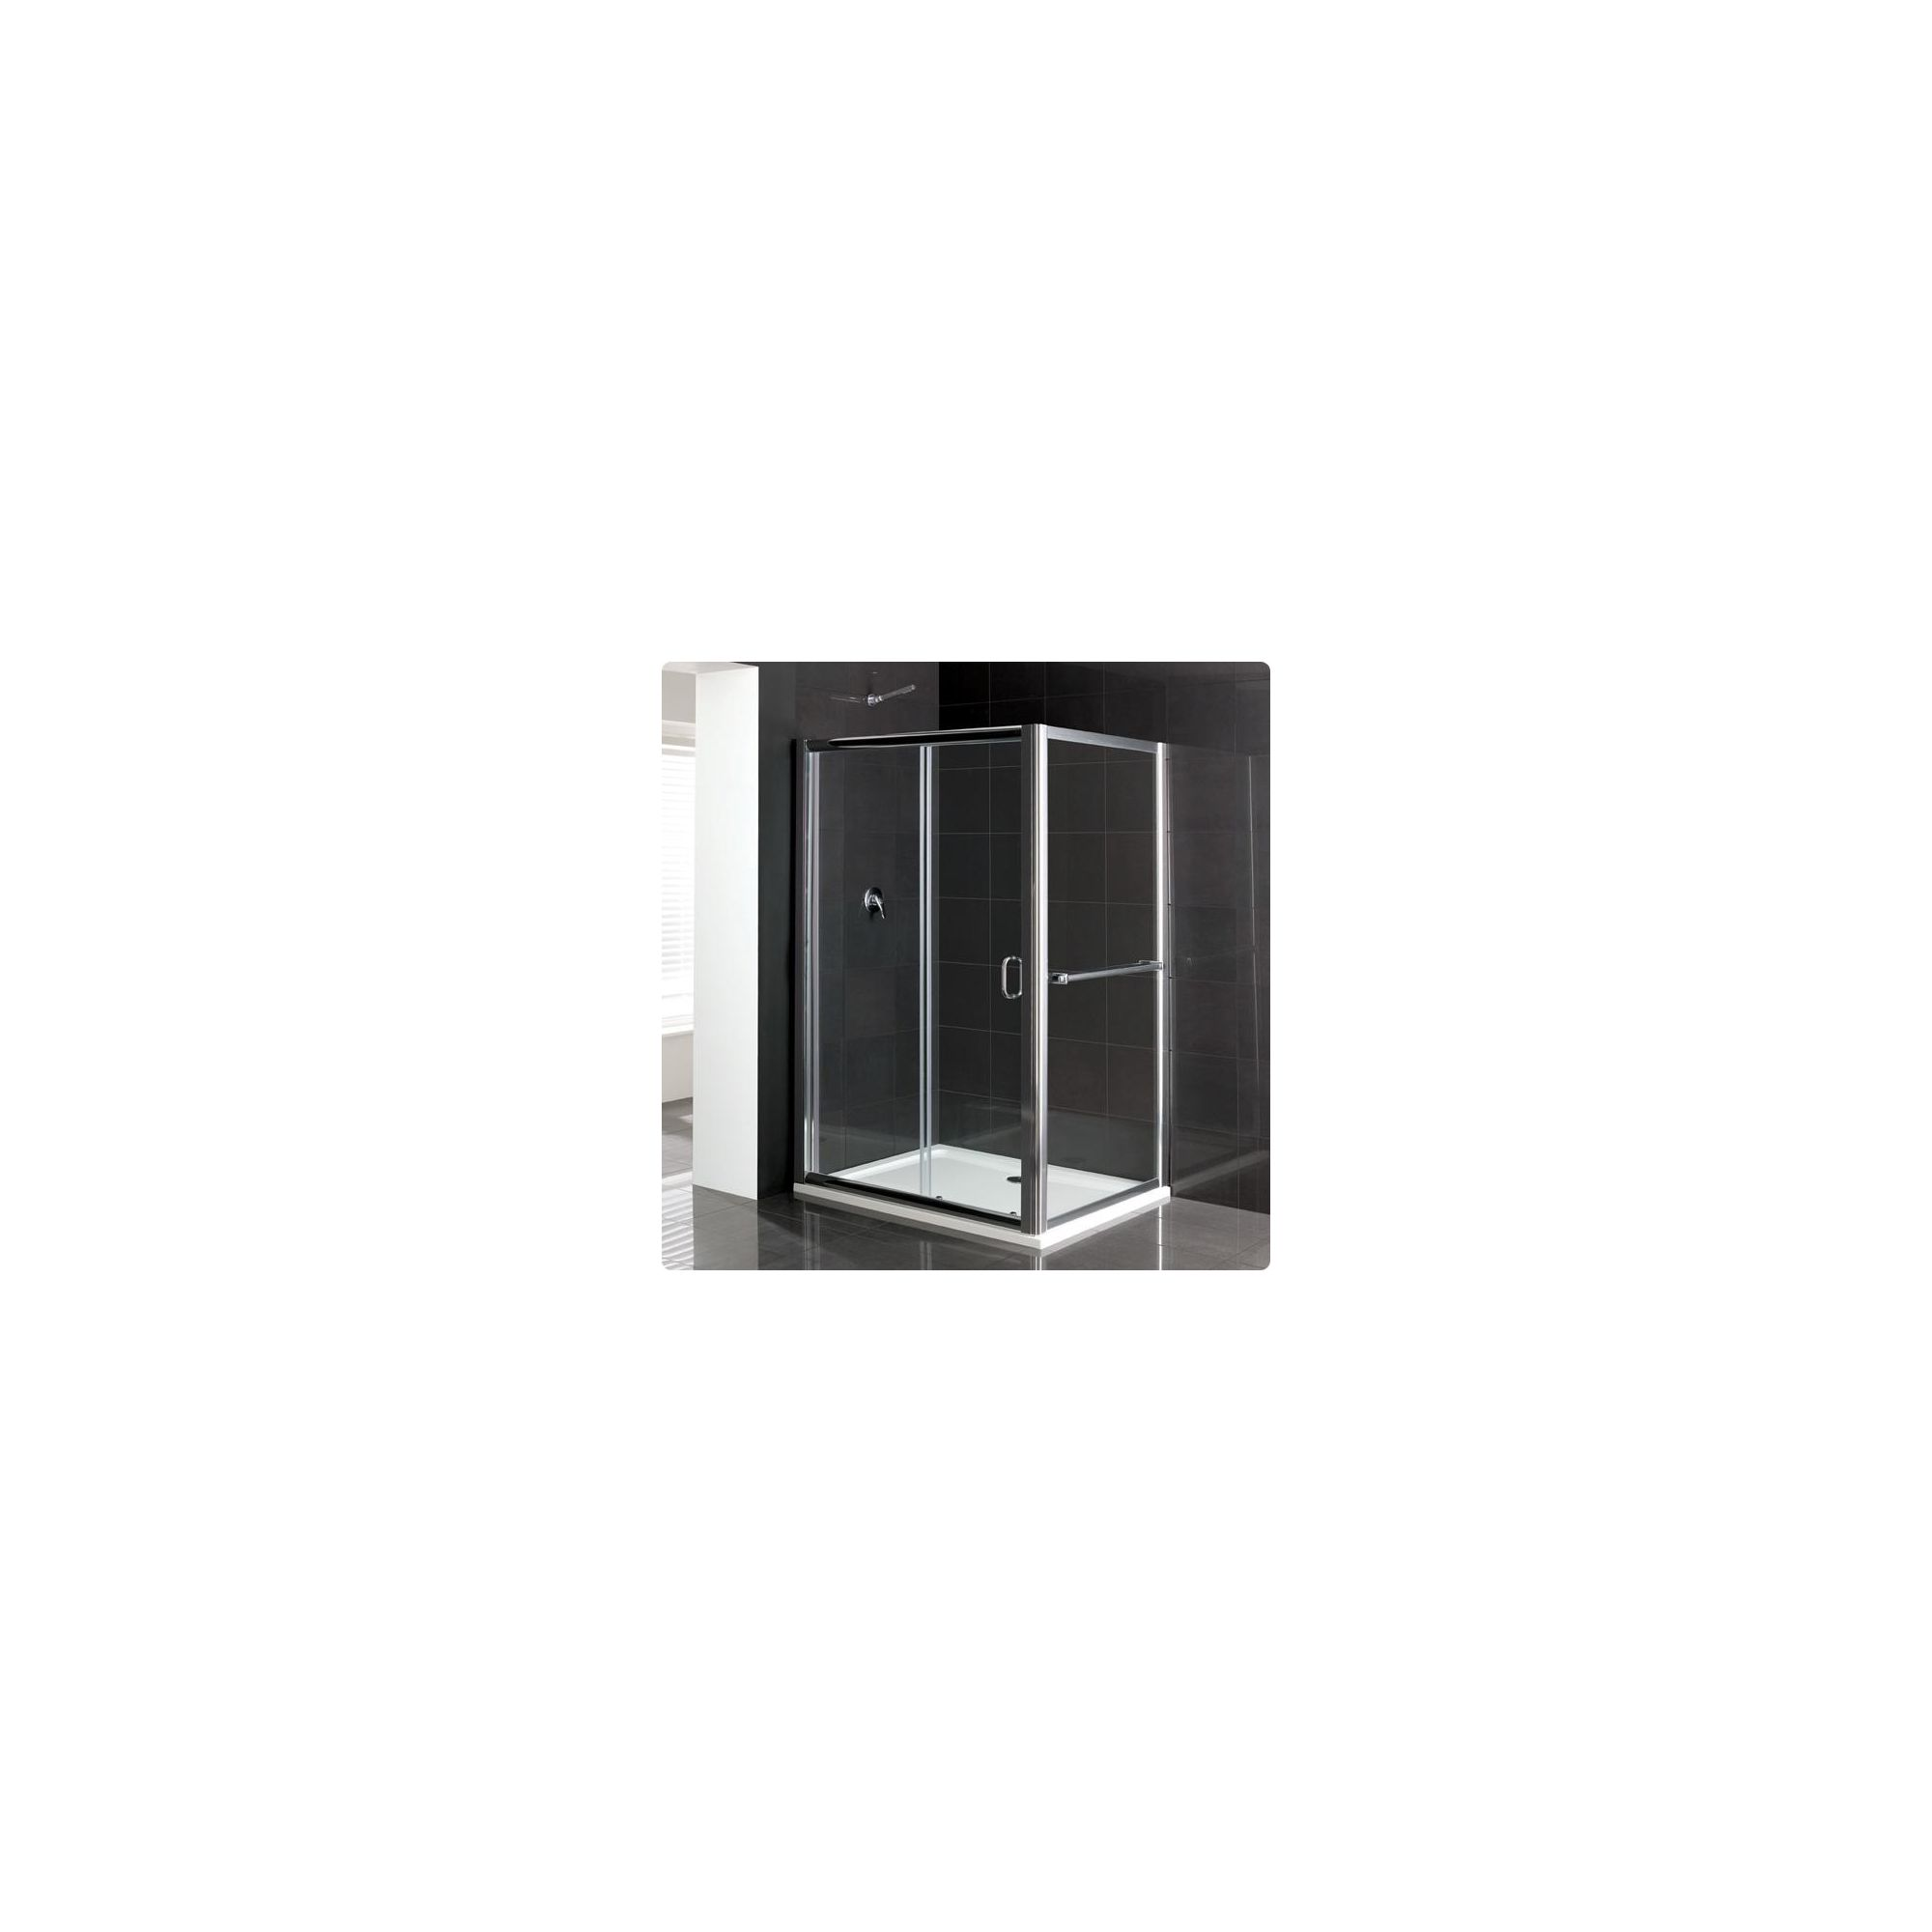 Duchy Elite Silver Sliding Door Shower Enclosure with Towel Rail, 1200mm x 900mm, Standard Tray, 6mm Glass at Tesco Direct